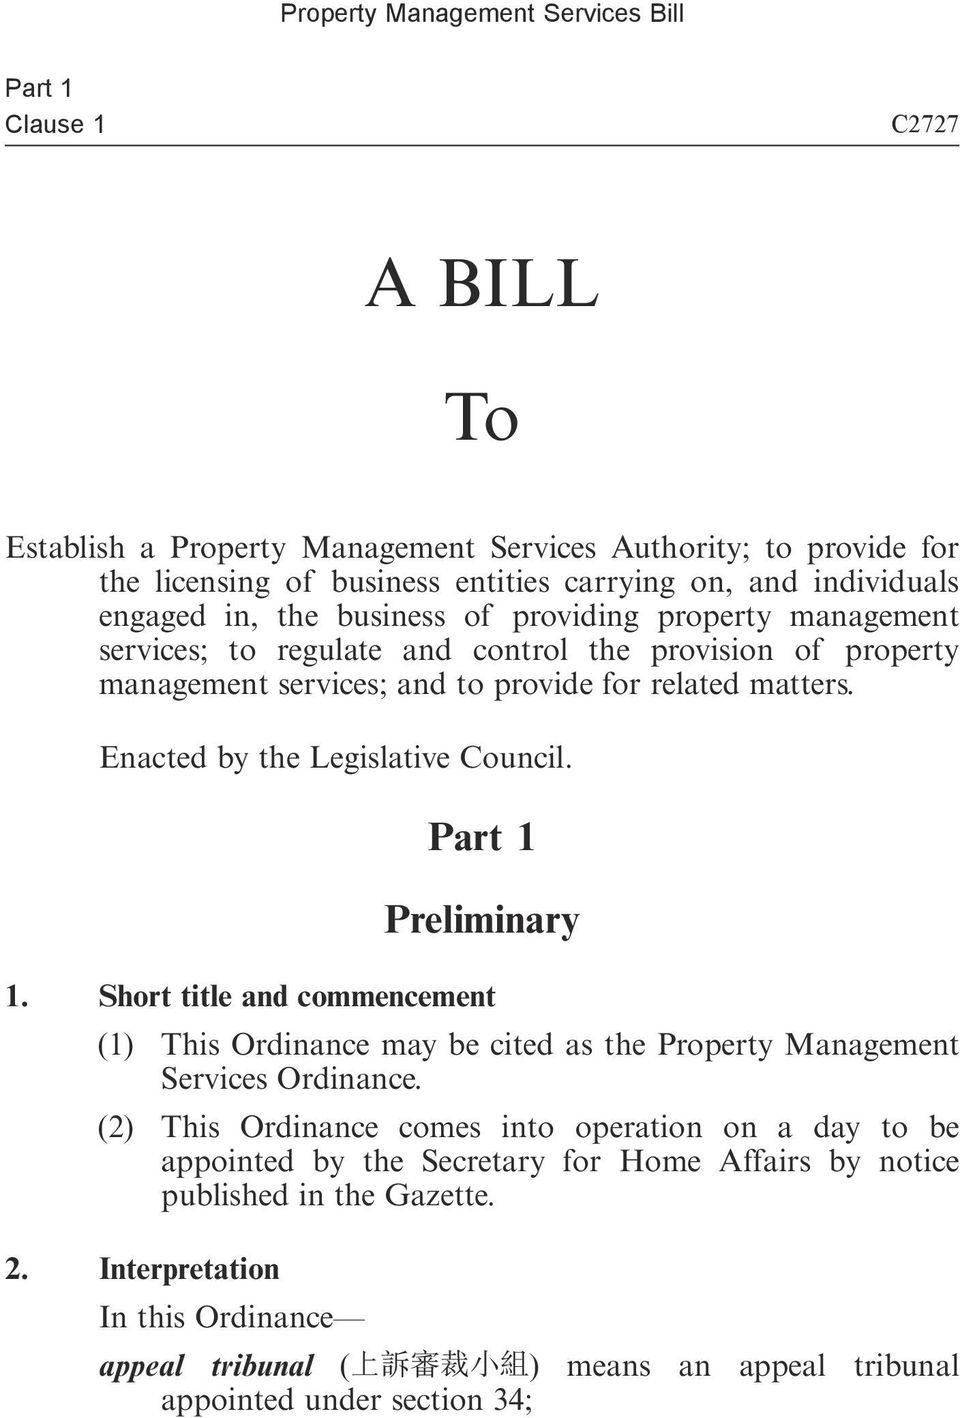 Enacted by the Legislative Council. Part 1 Preliminary 1. Short title and commencement (1) This Ordinance may be cited as the Property Management Services Ordinance.